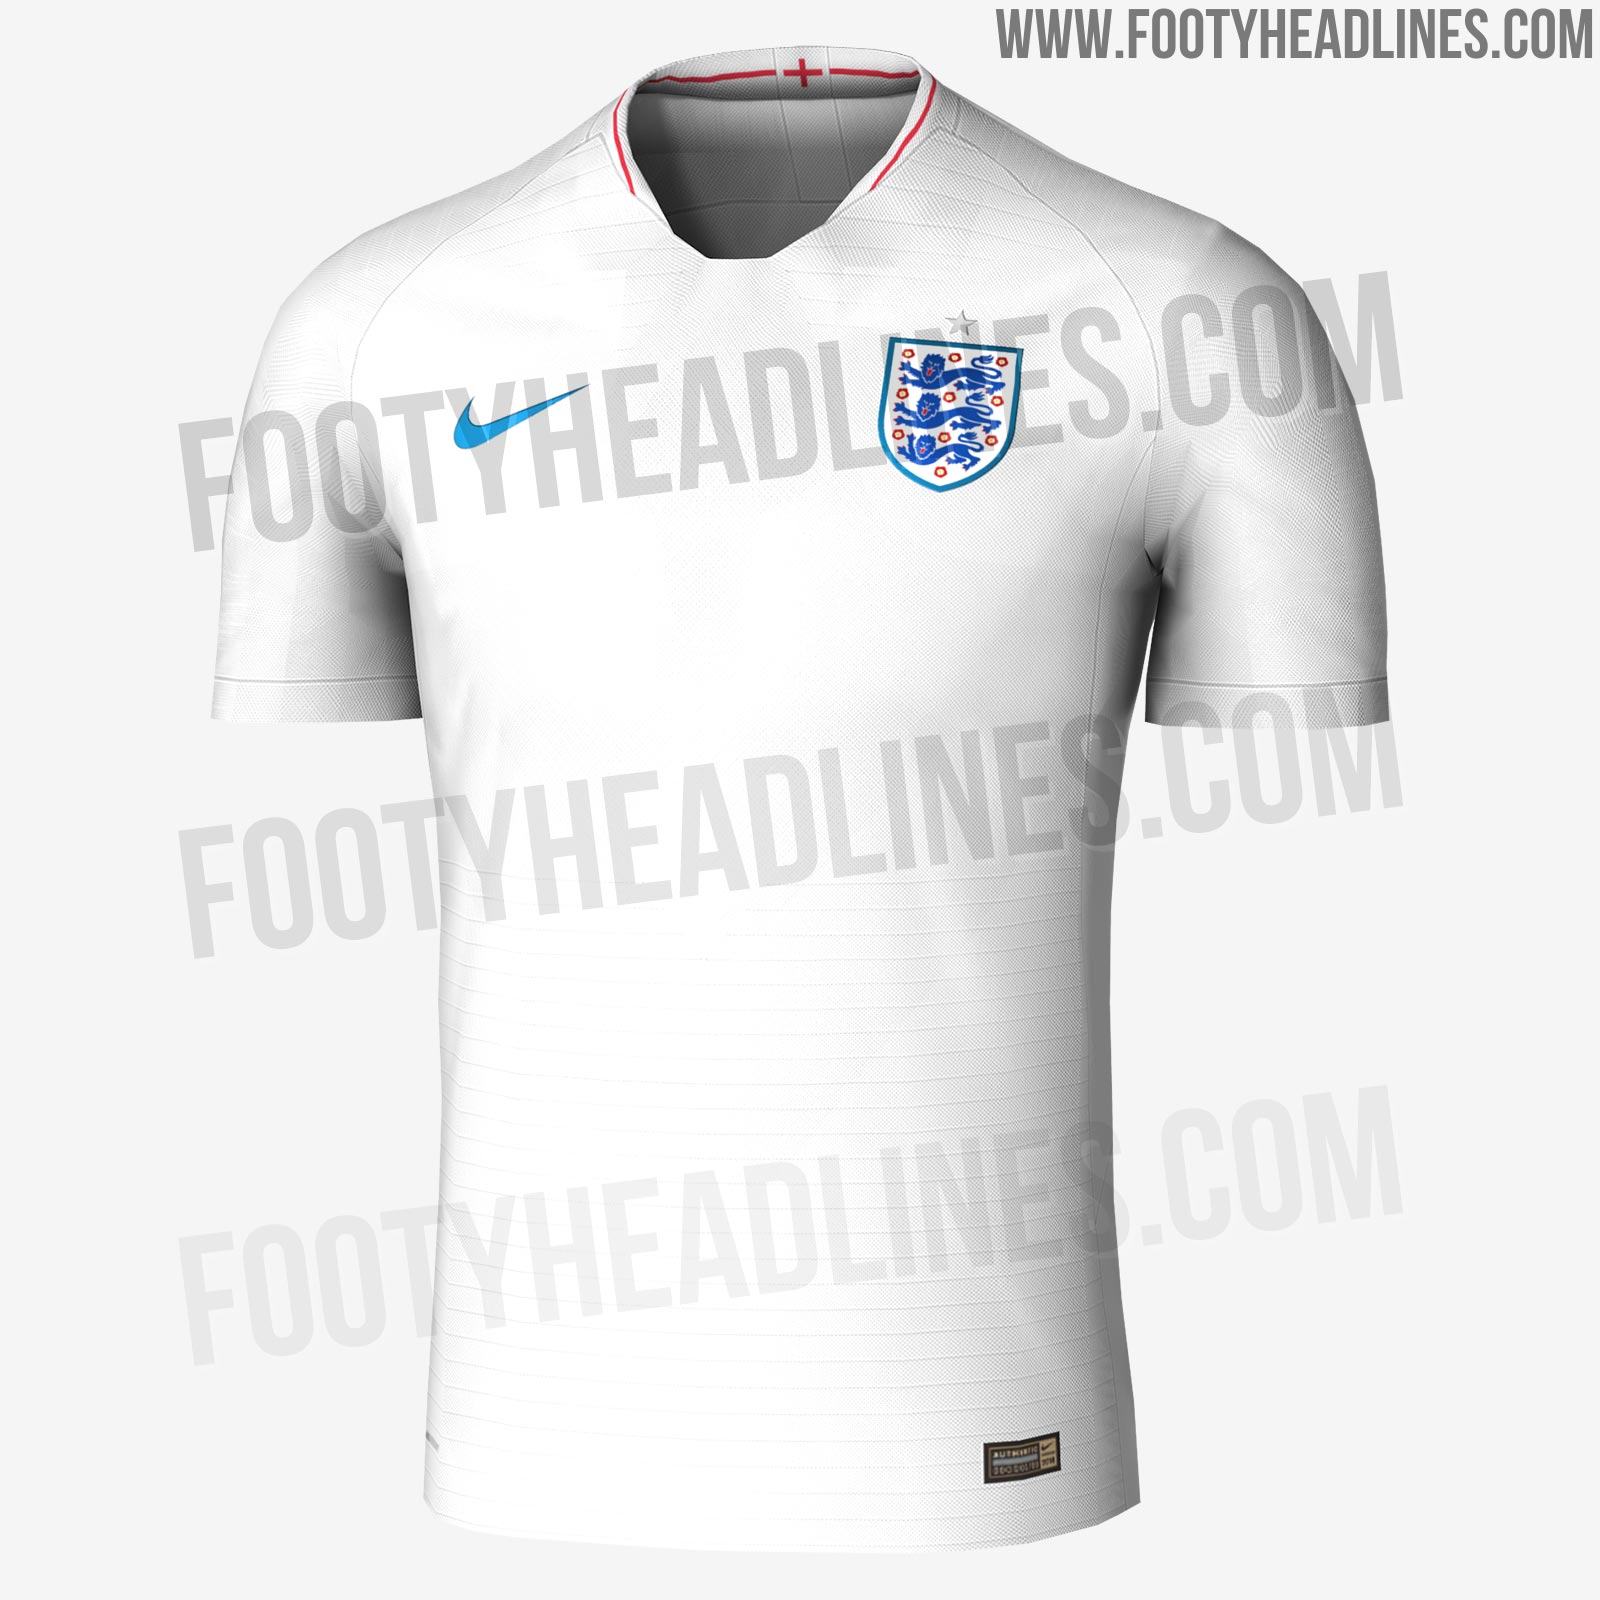 Download England Kit World Cup 2018 - england-2018-world-cup-kits%2B%25283%2529  Perfect Image Reference_625335 .jpg